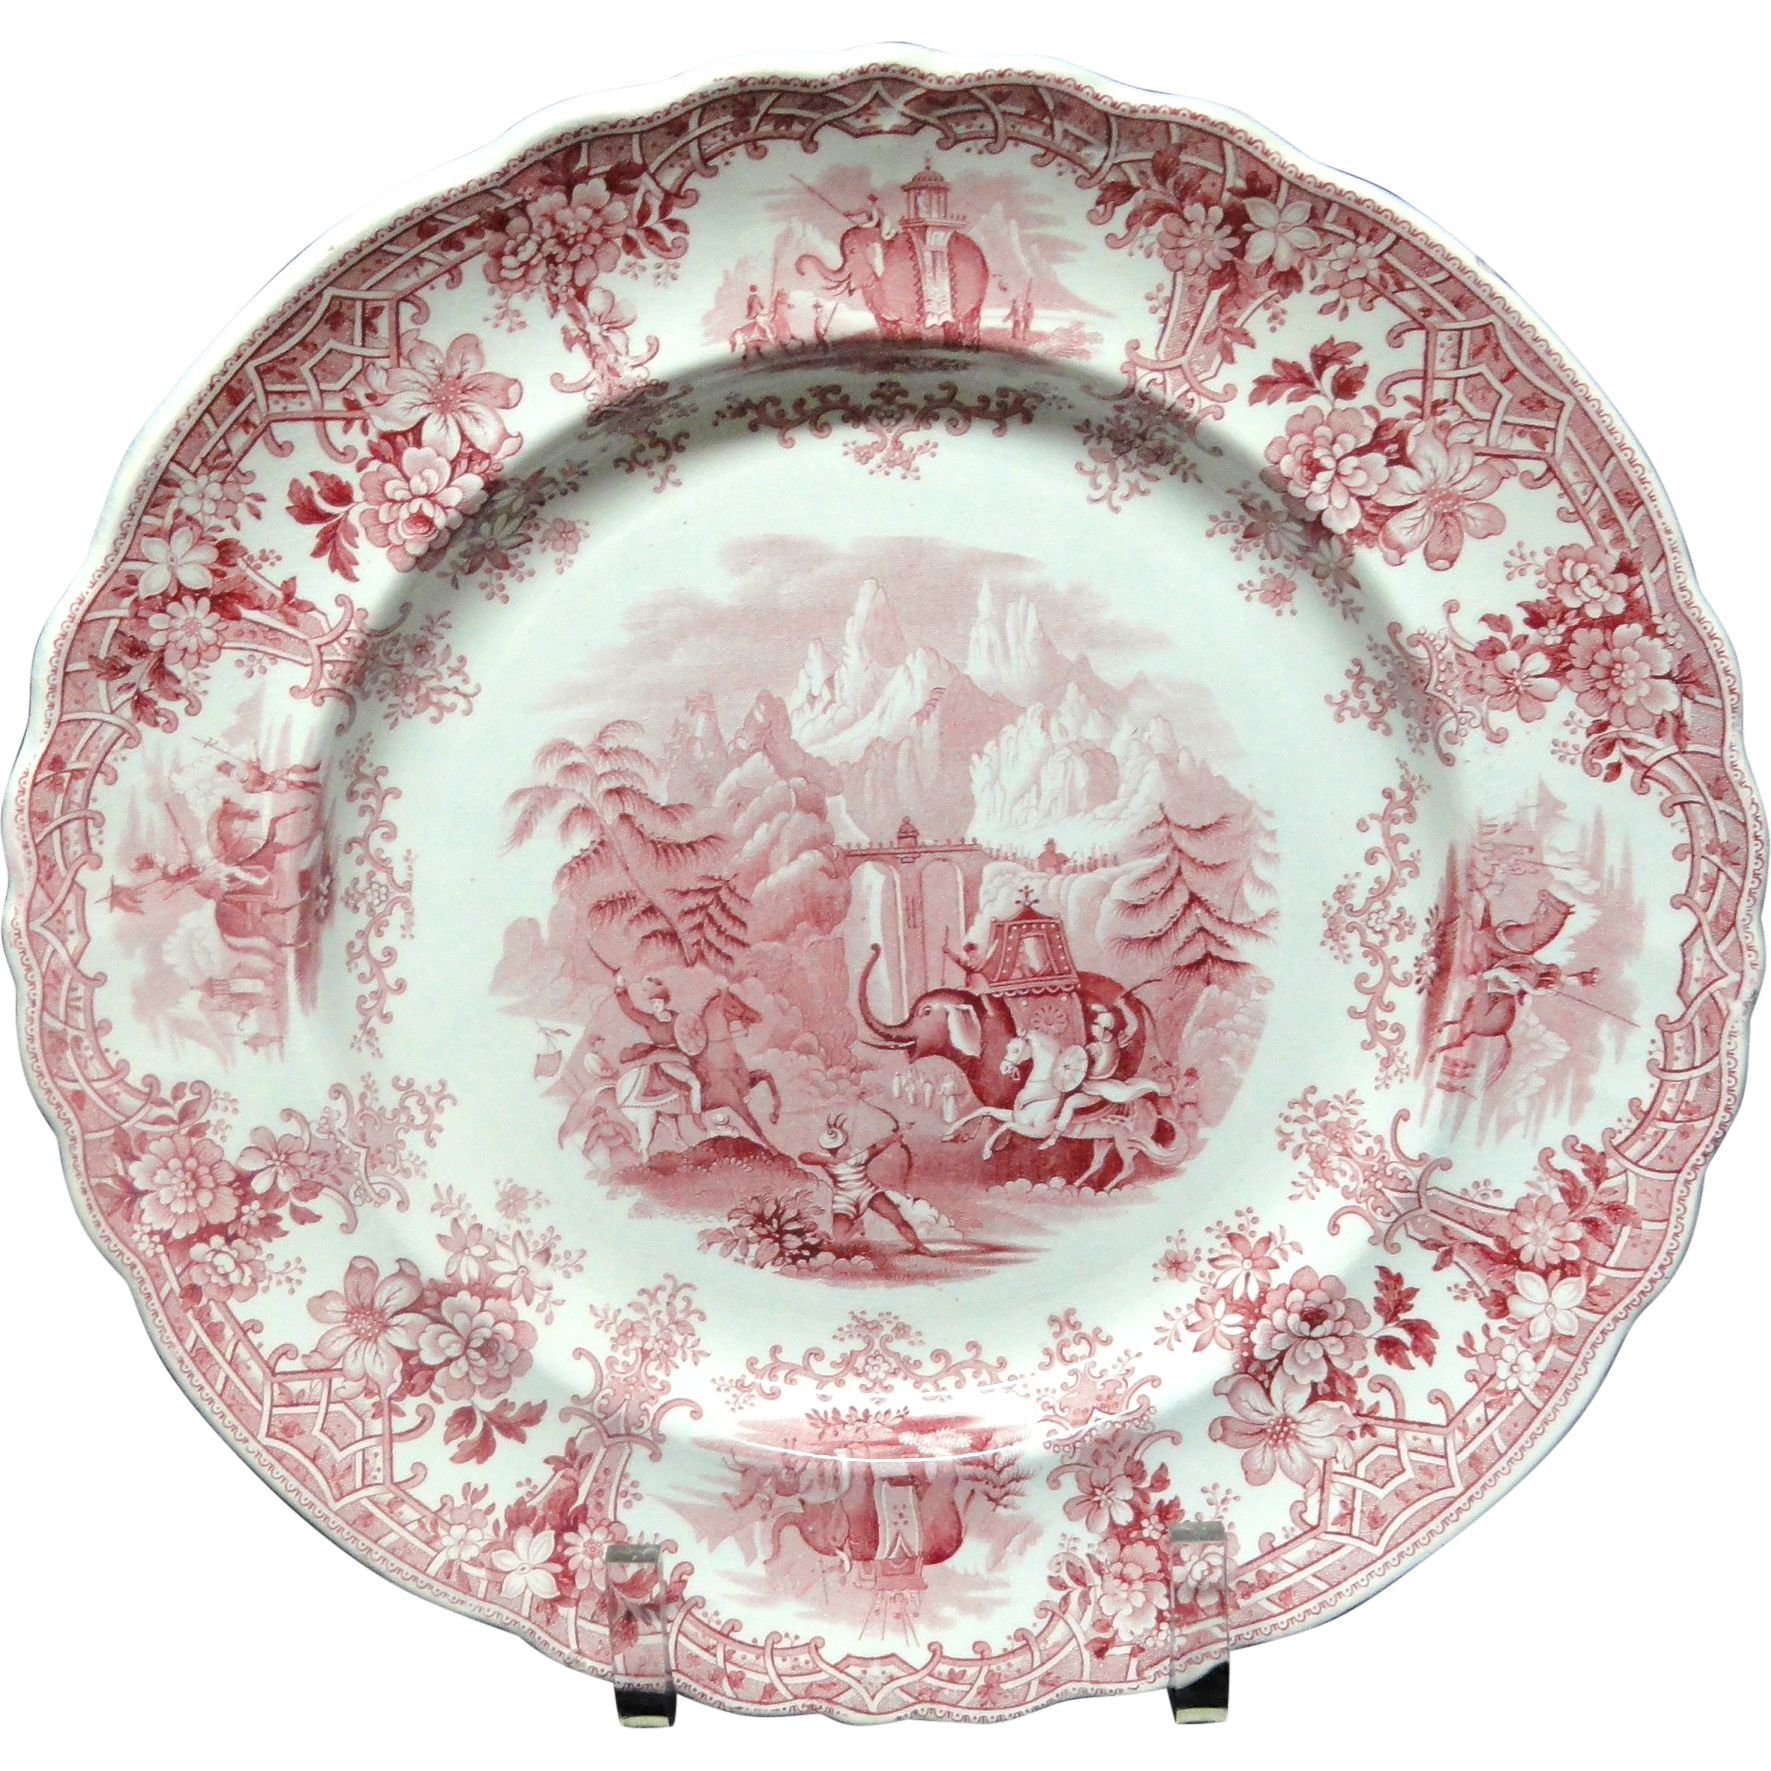 Hannibal Passing the Alps Red Transferware Plate ~ 1830